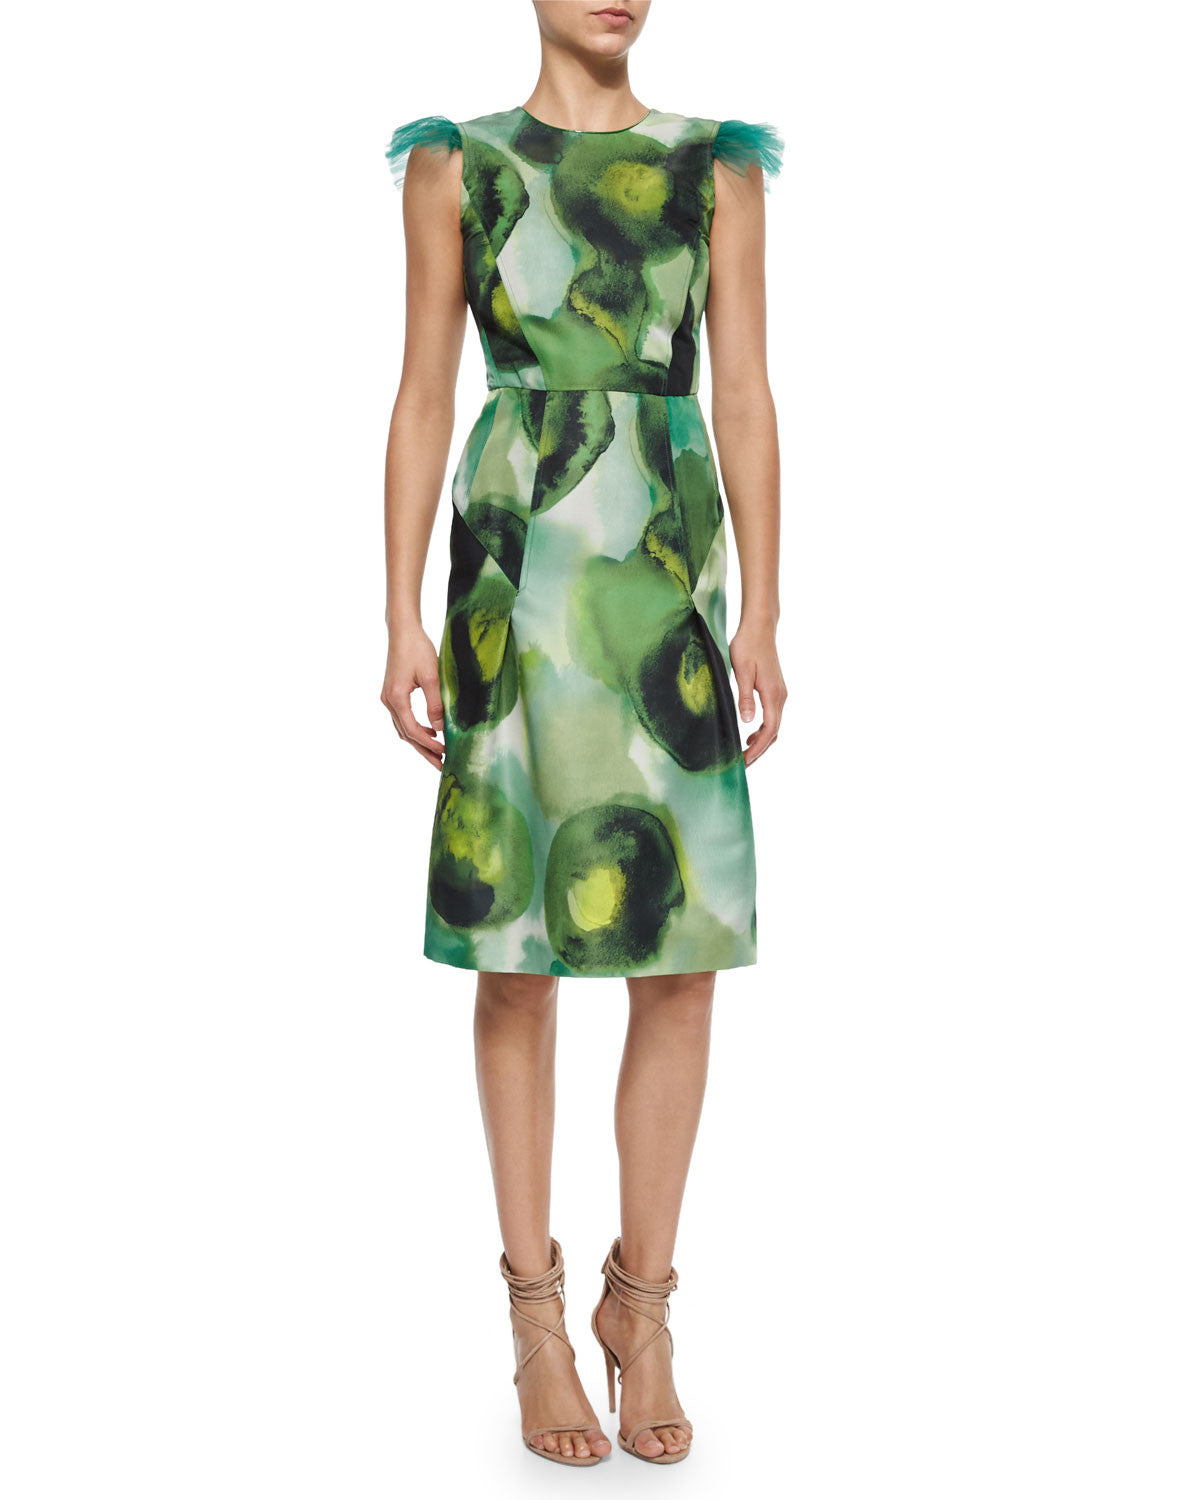 BURBERRY PRORSUM FLORAL PRINT SILK COTTON CREPE DRESS - SIZE 42